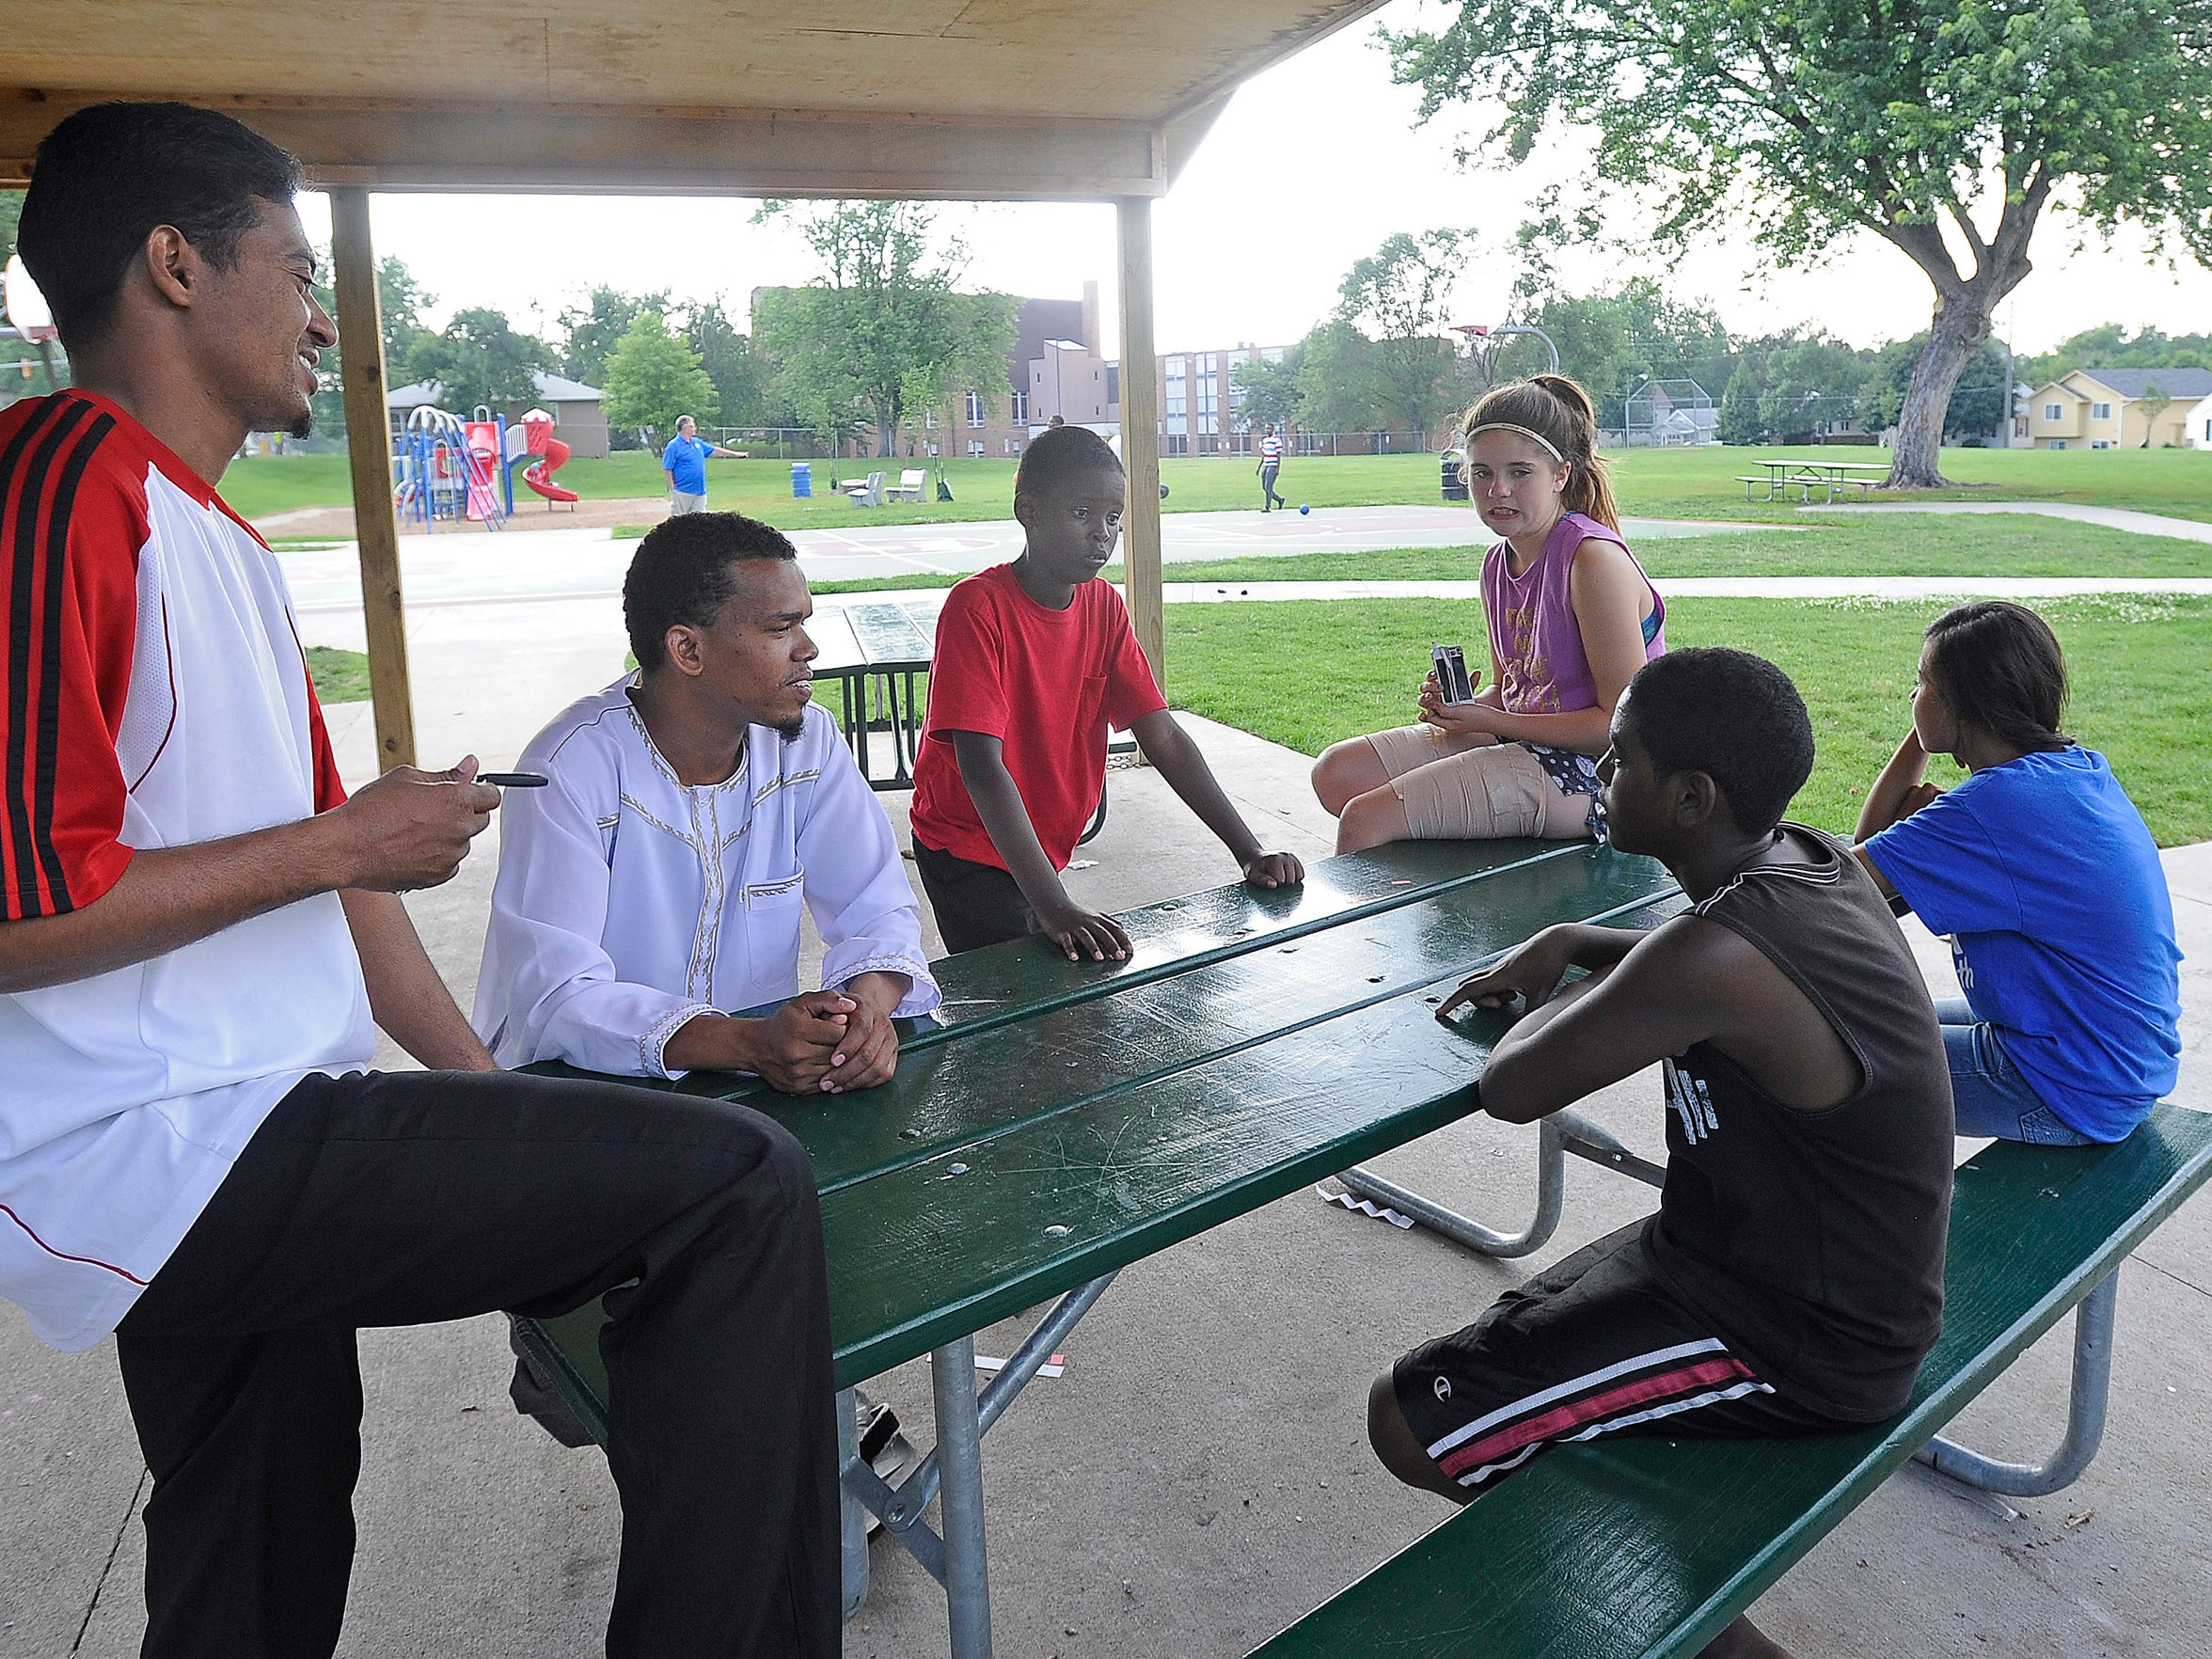 Ramzy Omarr and Sadik Muhammad, Mohamed, Alyssa Krush, Ashmita Biswa and Abel Balih hang out at Meldrum Park in the Whittier neighborhood in Sioux Falls, S.D., Thursday, July 9, 2015.